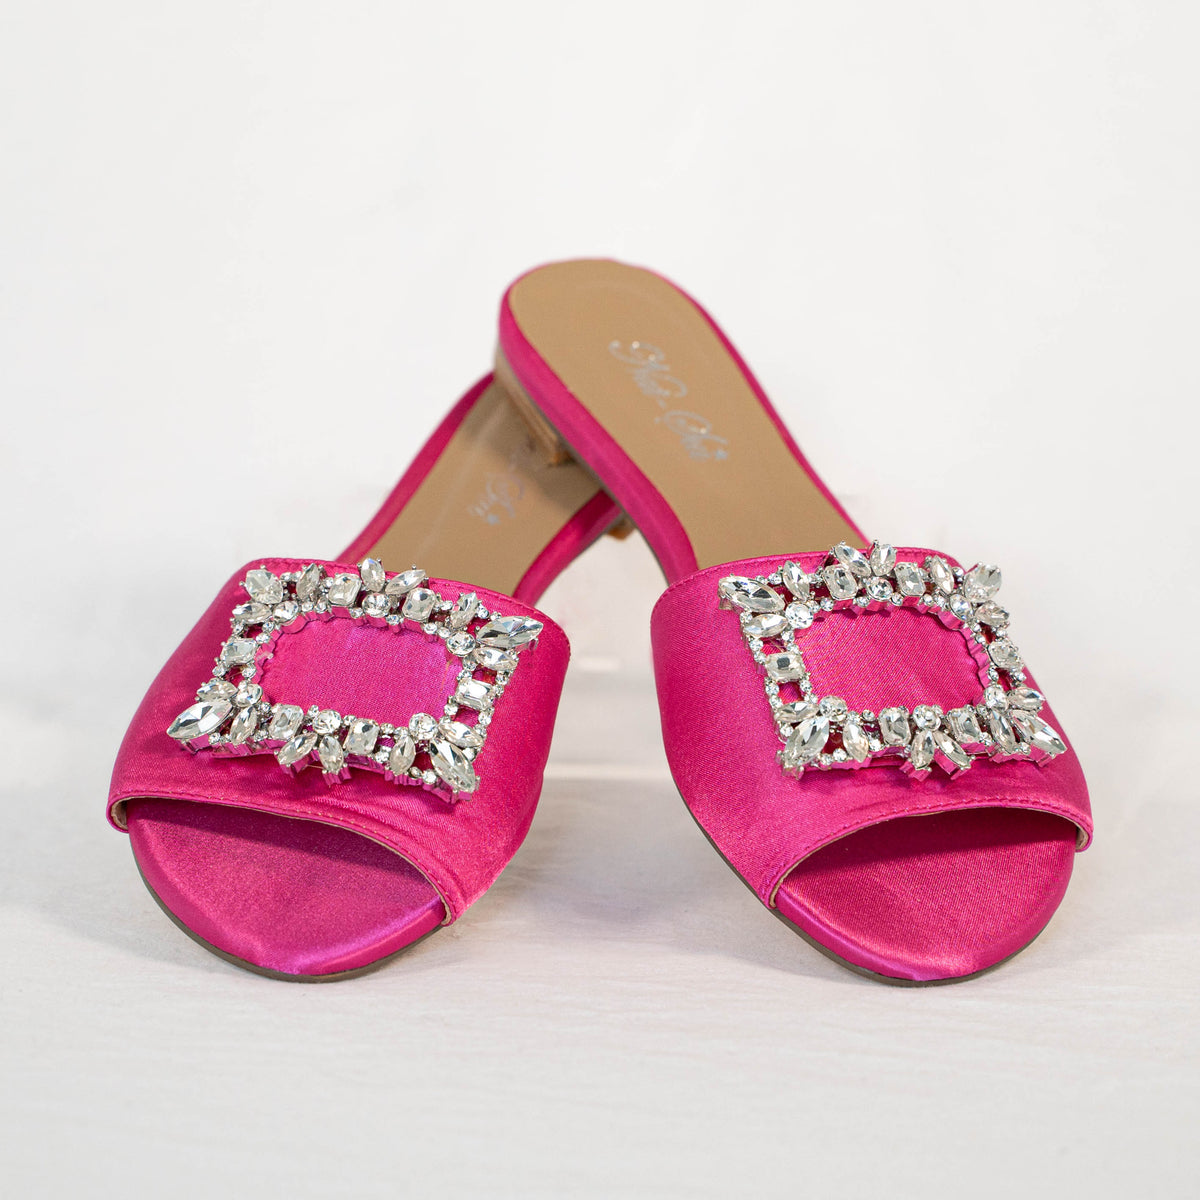 Hot Pink Satin Slide with Diamante Buckle